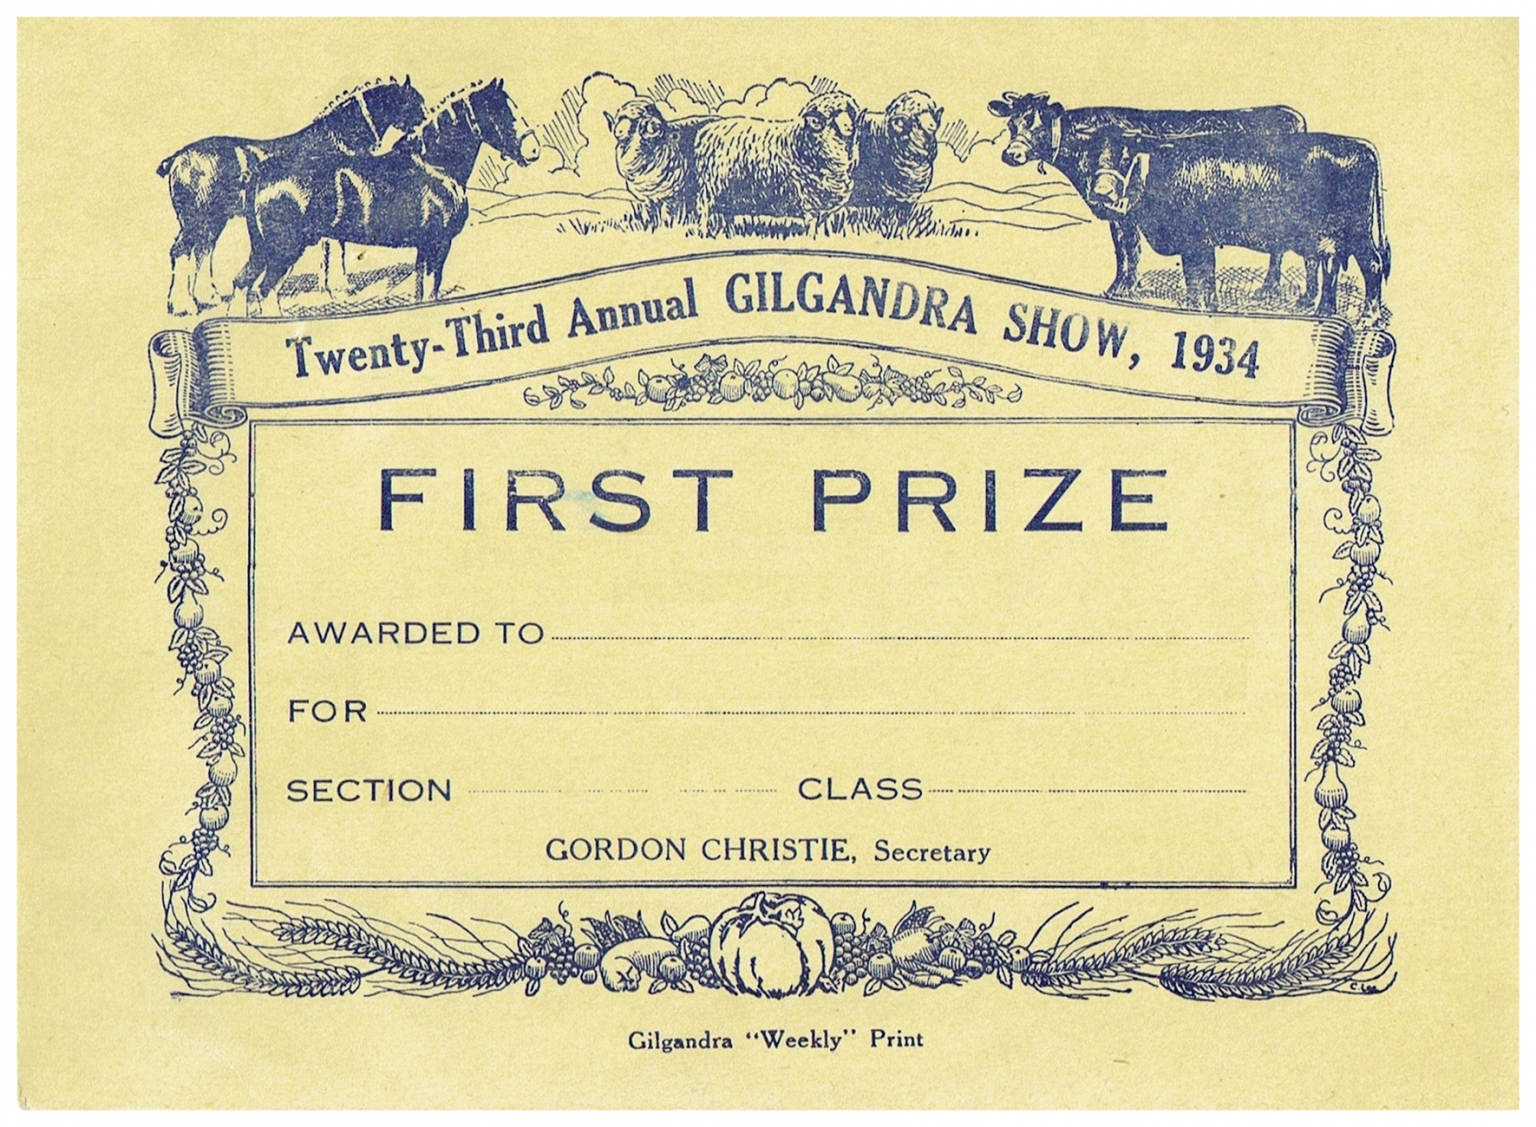 1934 First Prize Card